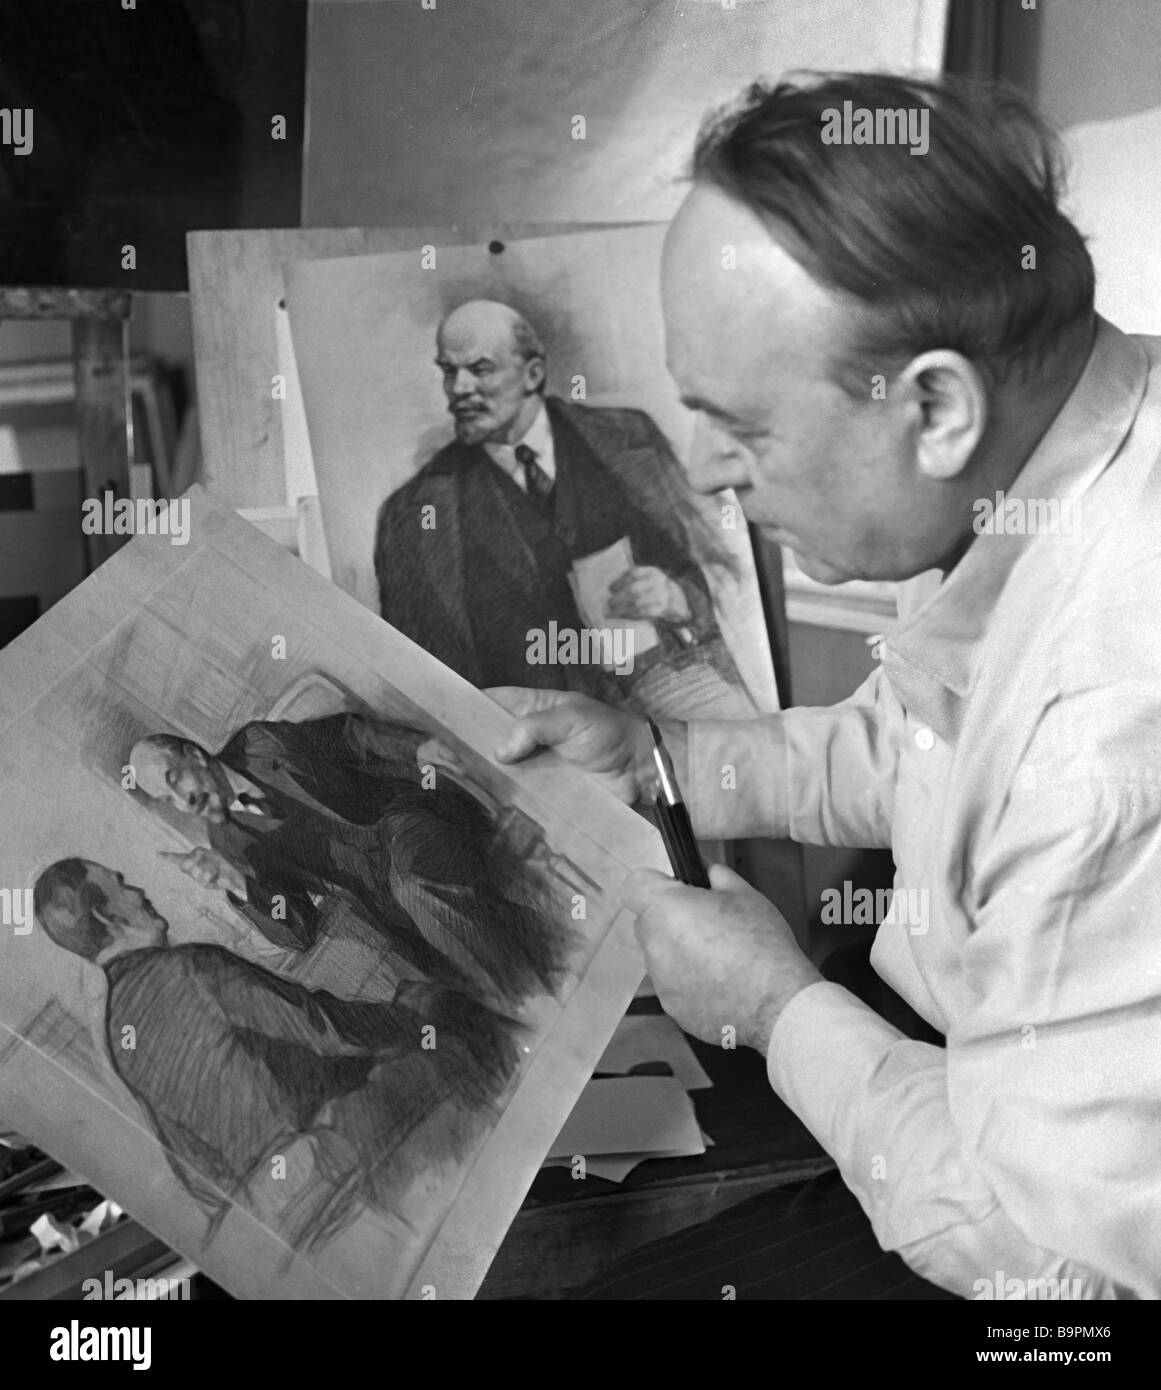 Artist Pyotr Vasilyev 1899 1975 with his portraits of Lenin - Stock Image